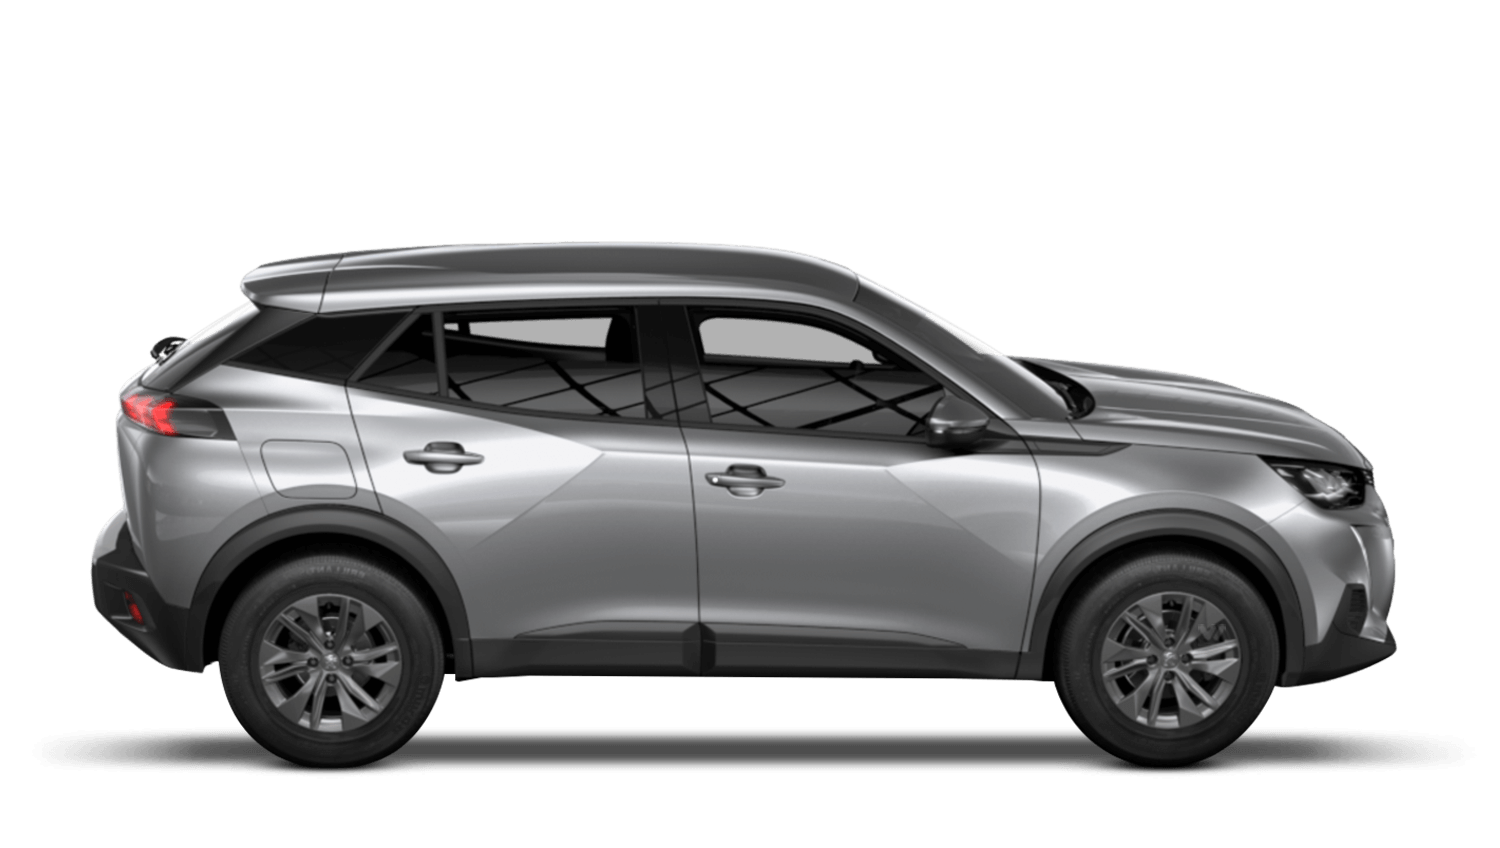 Cumulus Grey All-new Peugeot 2008 SUV